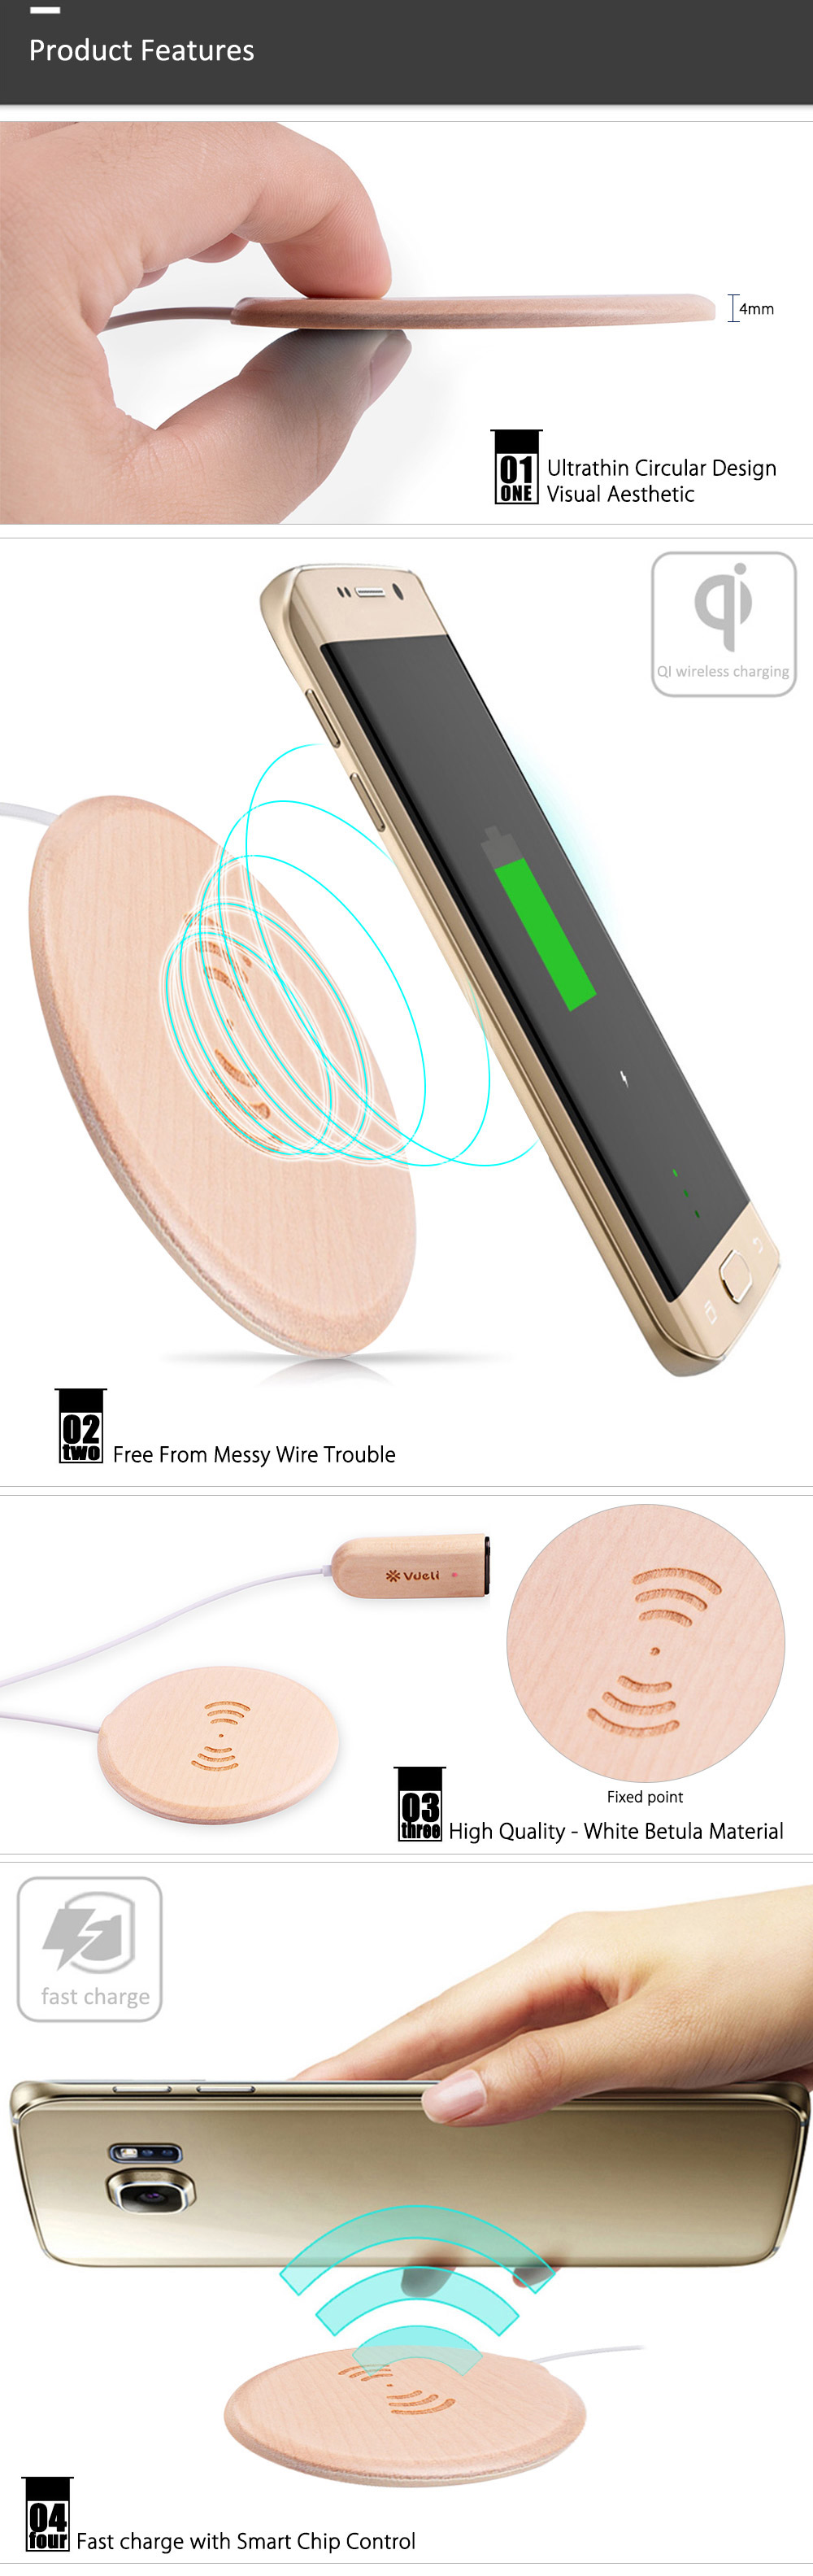 Vdeli QI - 007 Ultrathin Wooden Wireless Charger Charging Dock